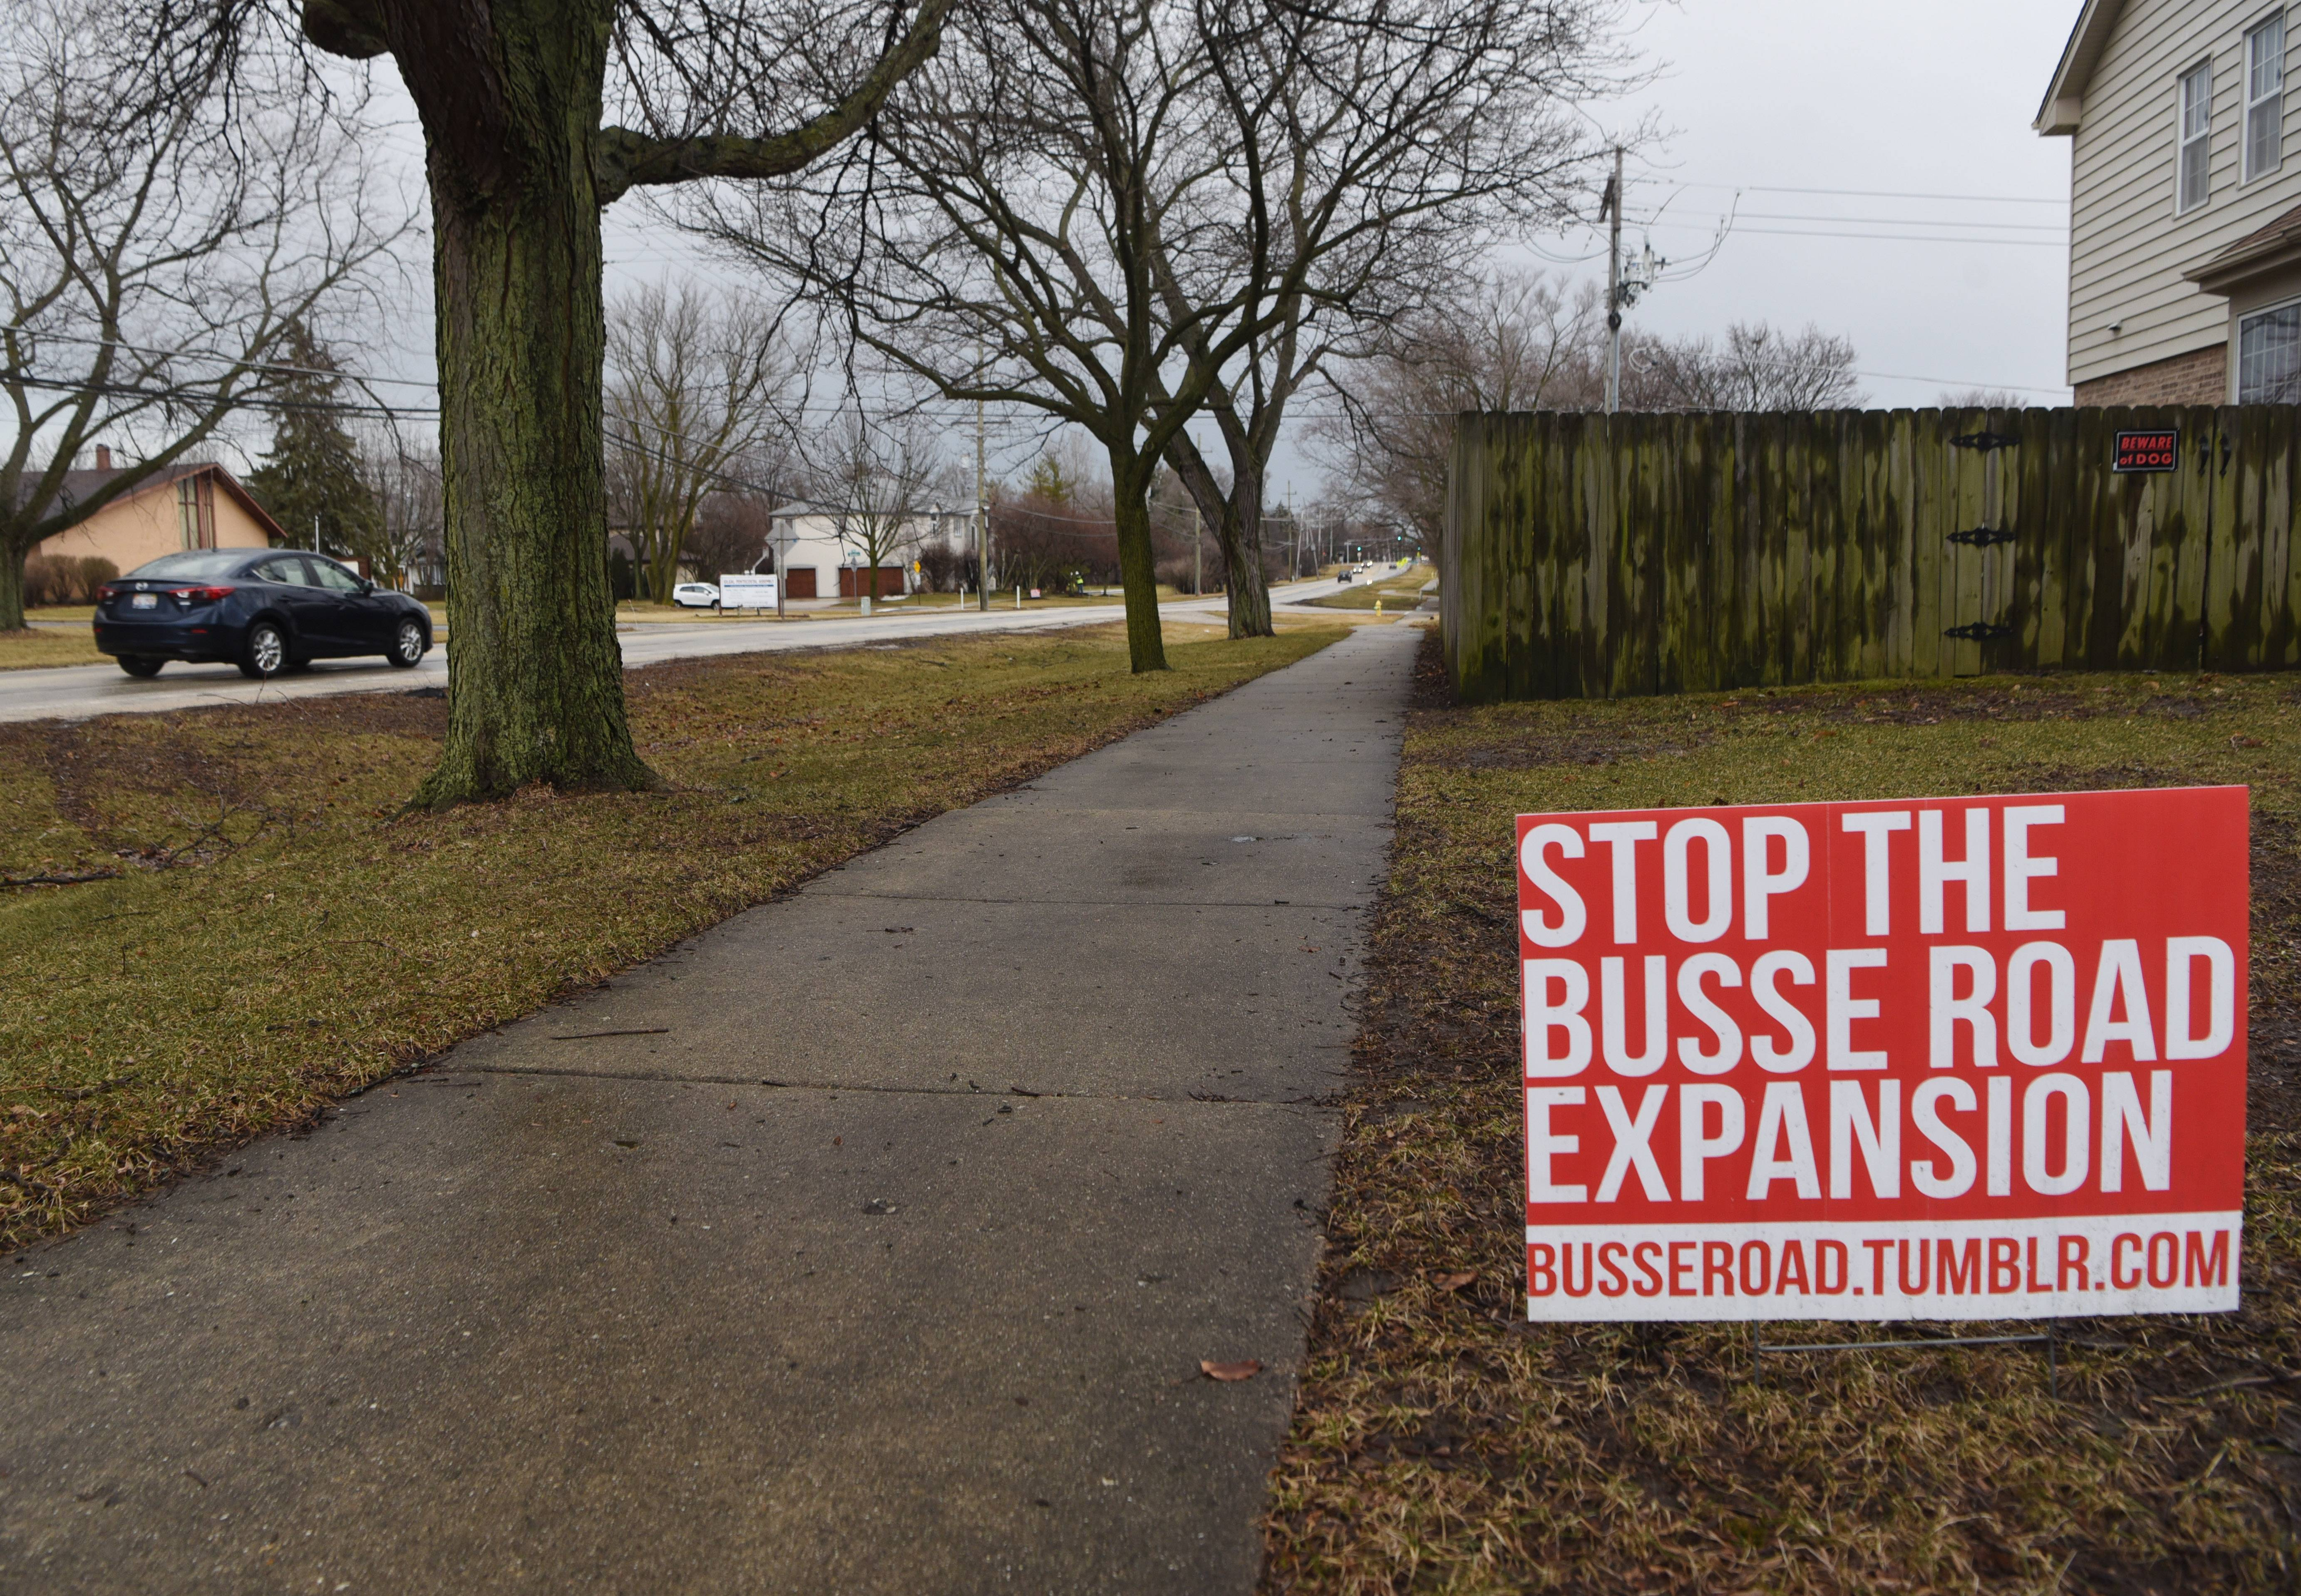 Although some see it as a lost cause, residents along Busse Road in Mount Prospect say they'll continue to oppose Cook County plans to widen the two-lane thoroughfare between Central and Golf roads and add sidewalks and curbs.